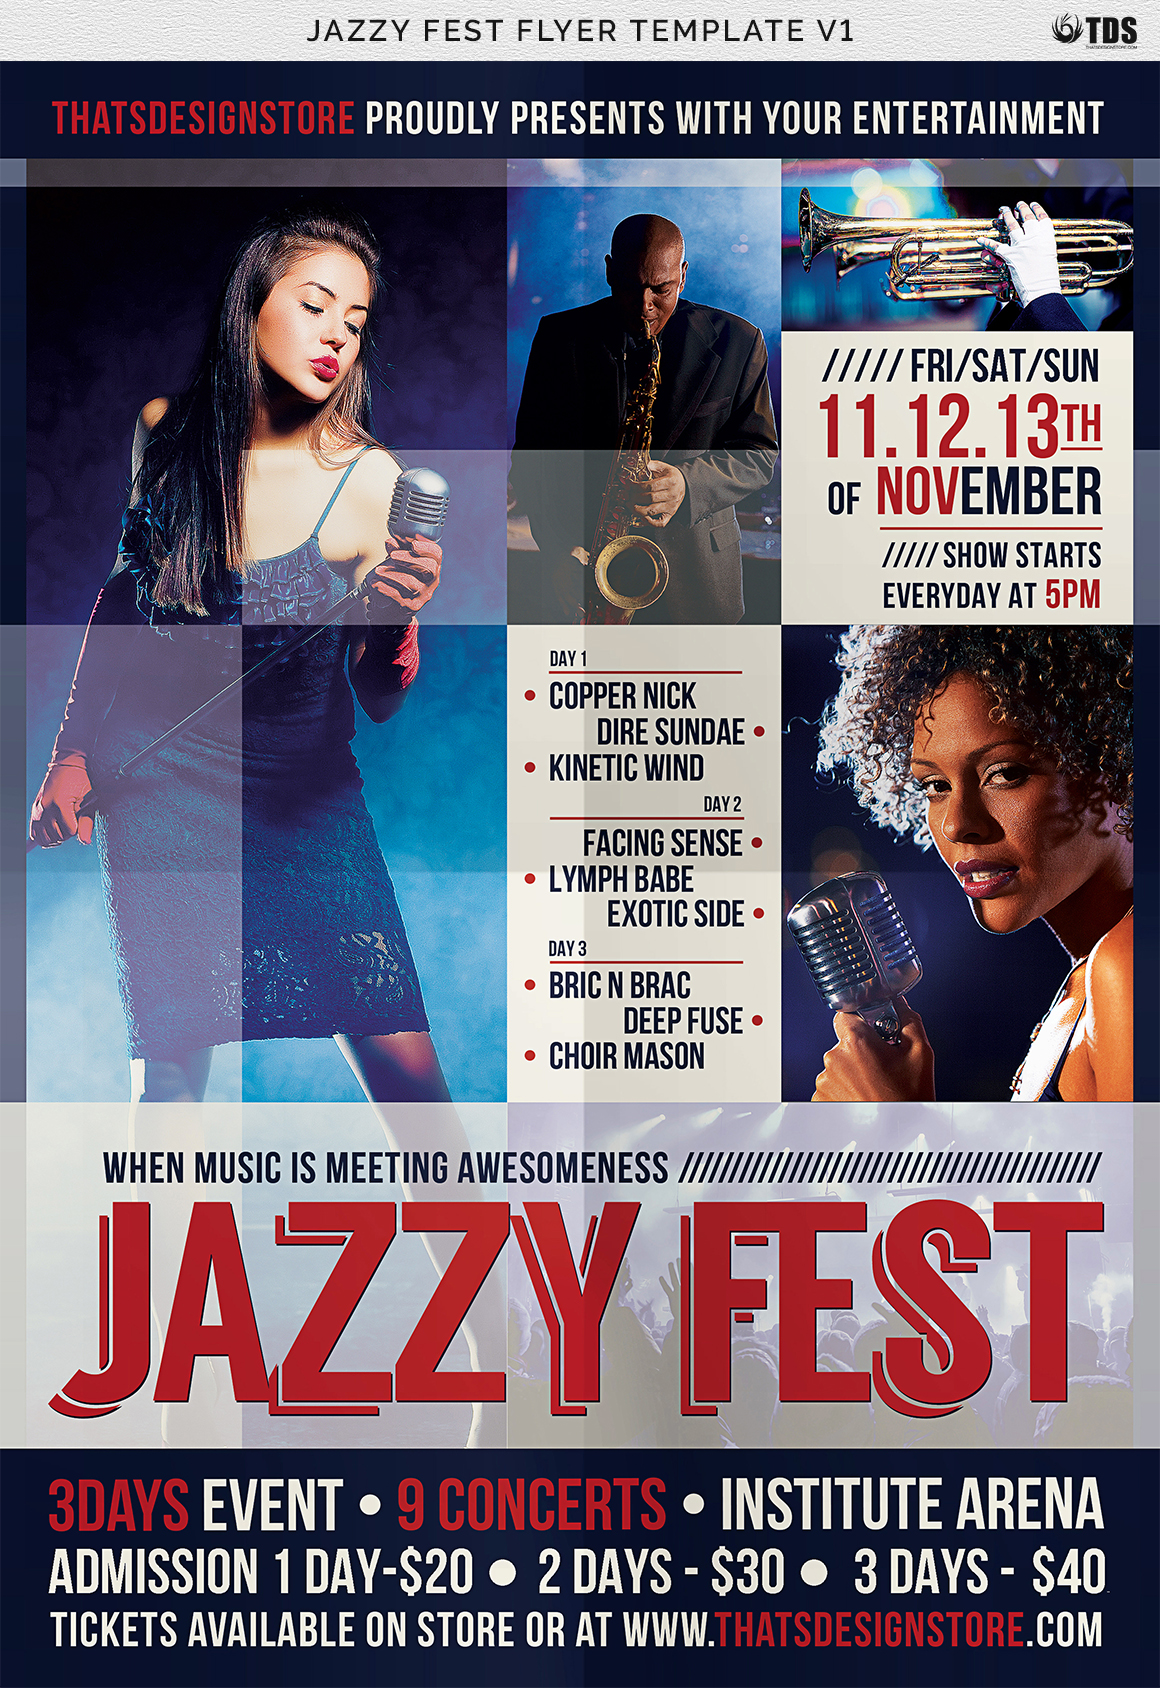 Jazzy Fest Flyer Template V1 example image 7